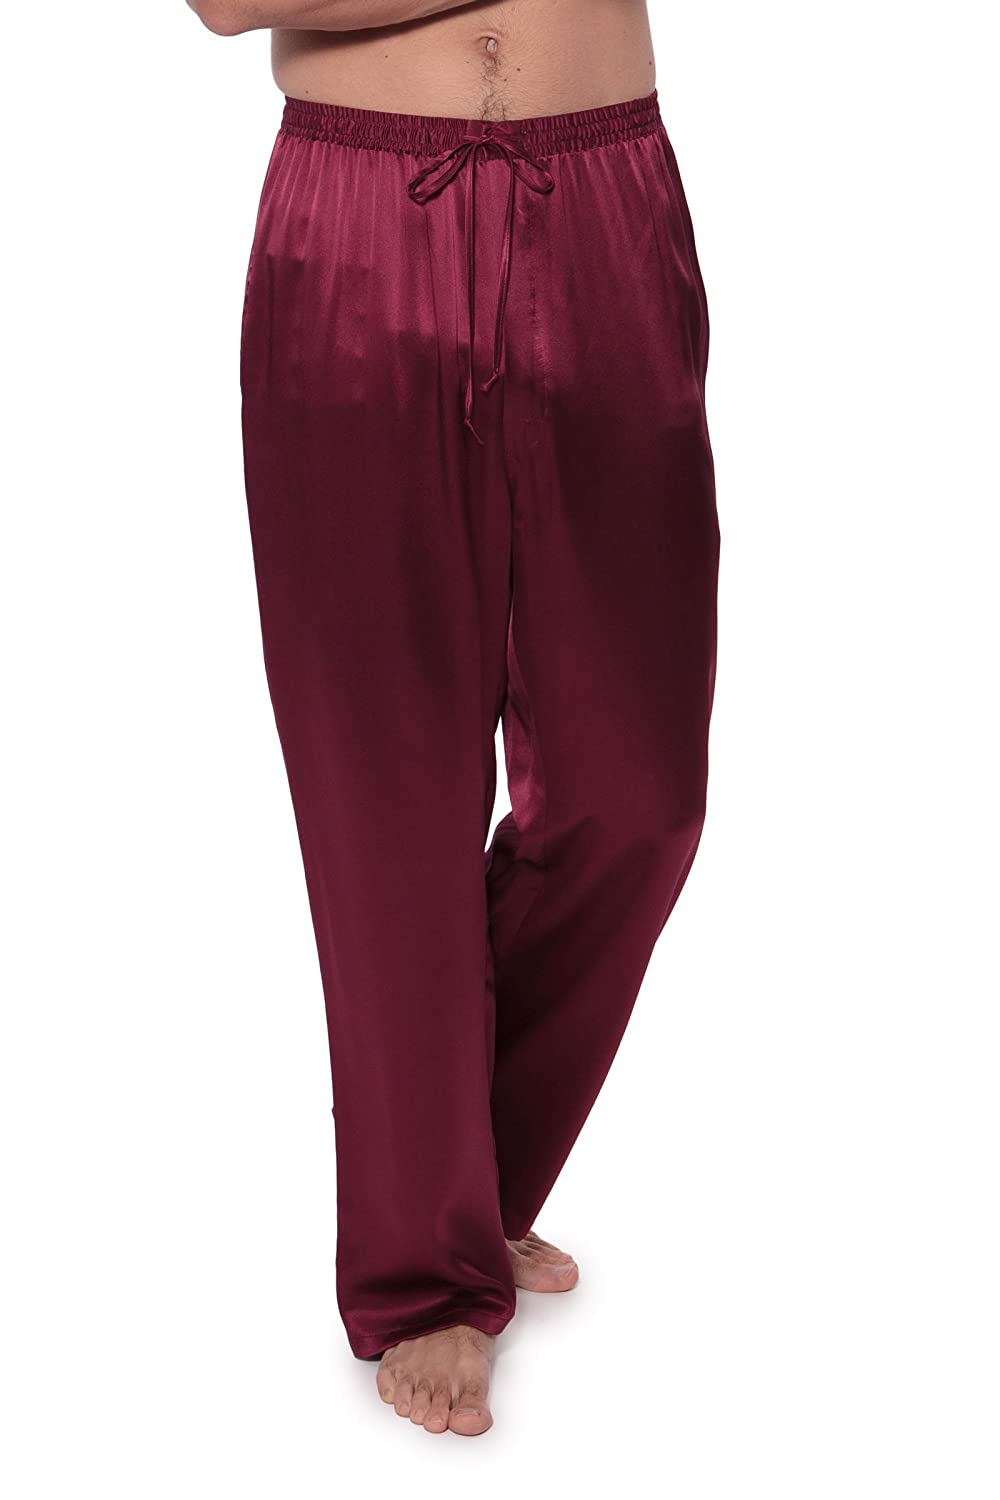 Men's 100% Silk Pajama Pants Eco-Friendly Gifts by TexereSilk